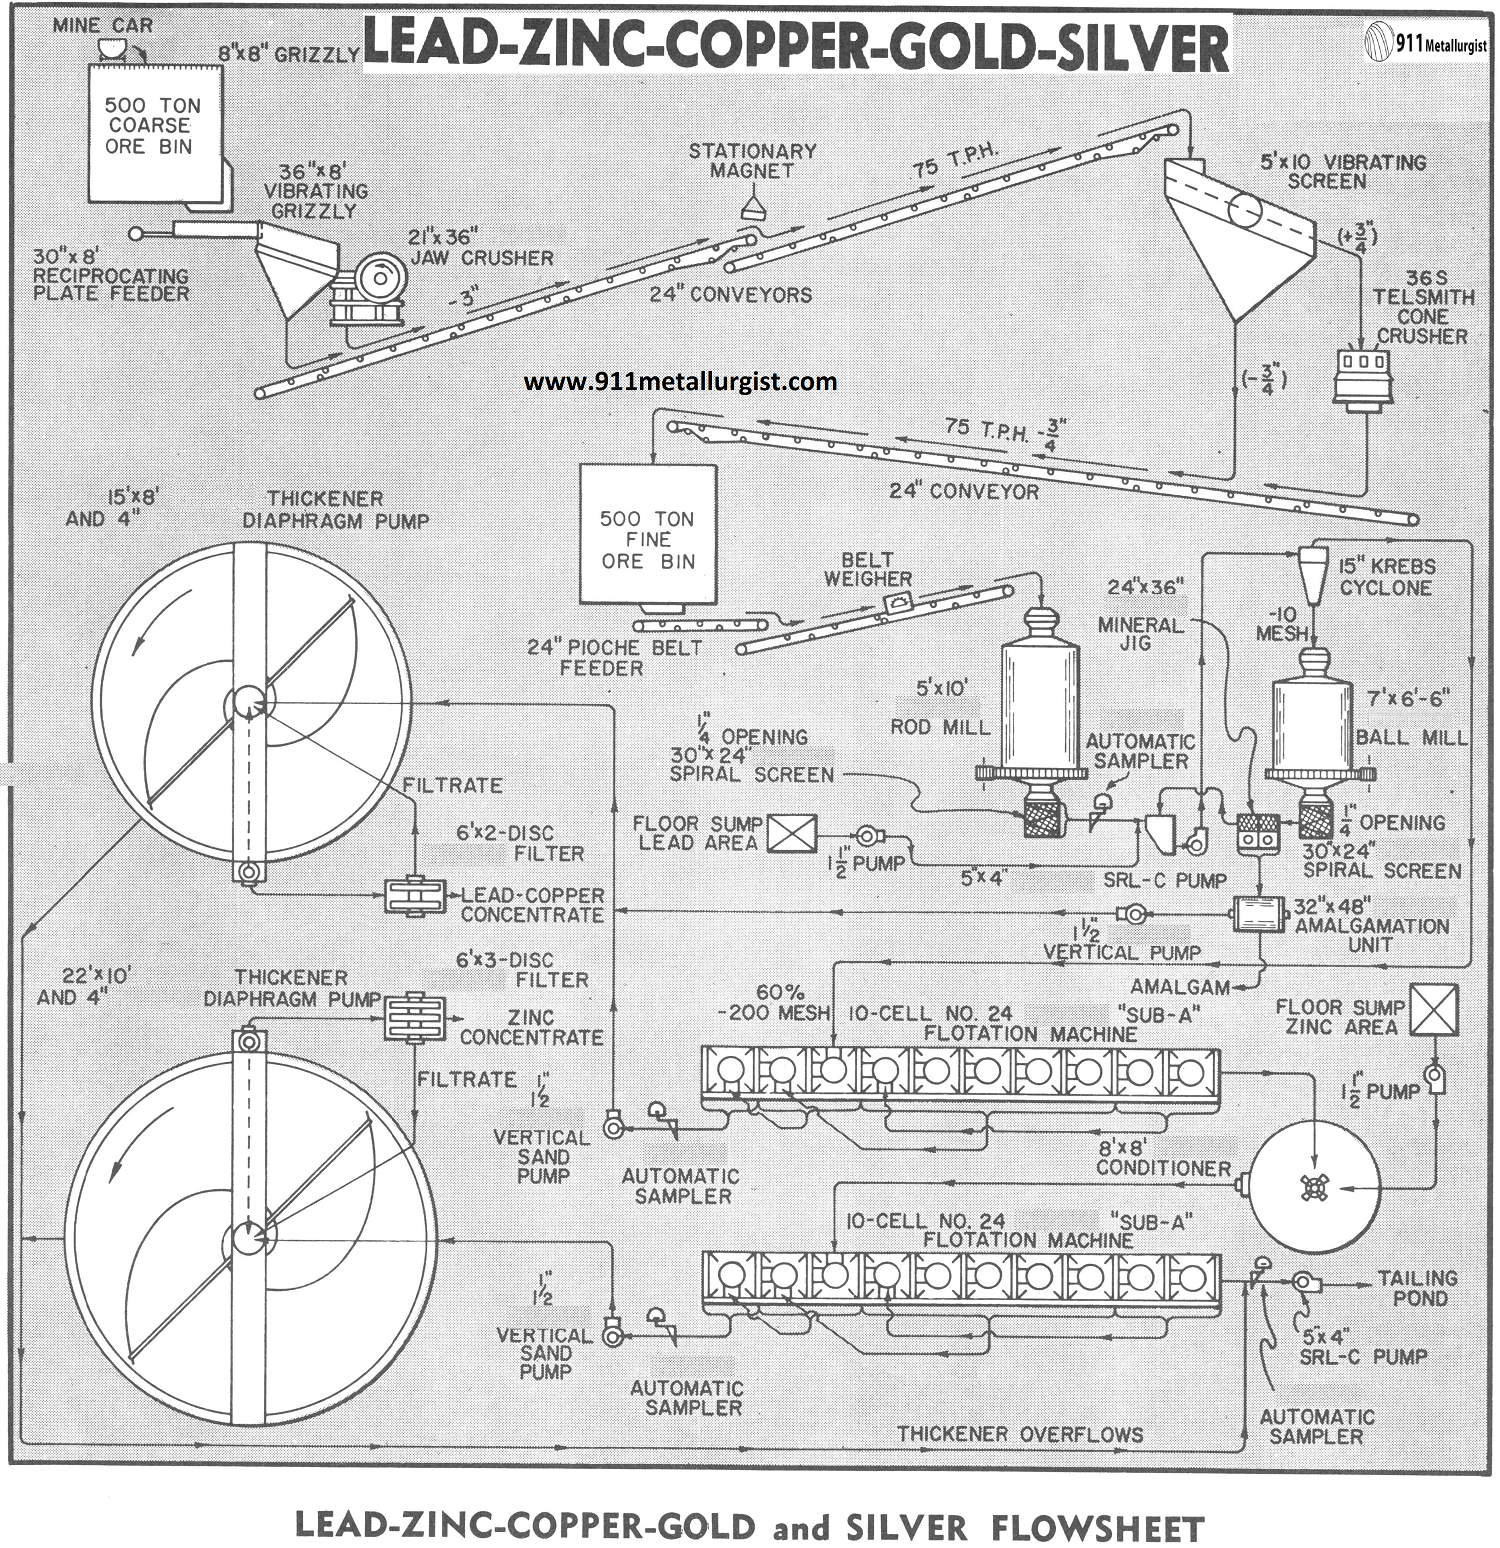 zinc process flow diagram how to process copper lead zinc ore with gold and silver by flotation  process copper lead zinc ore with gold